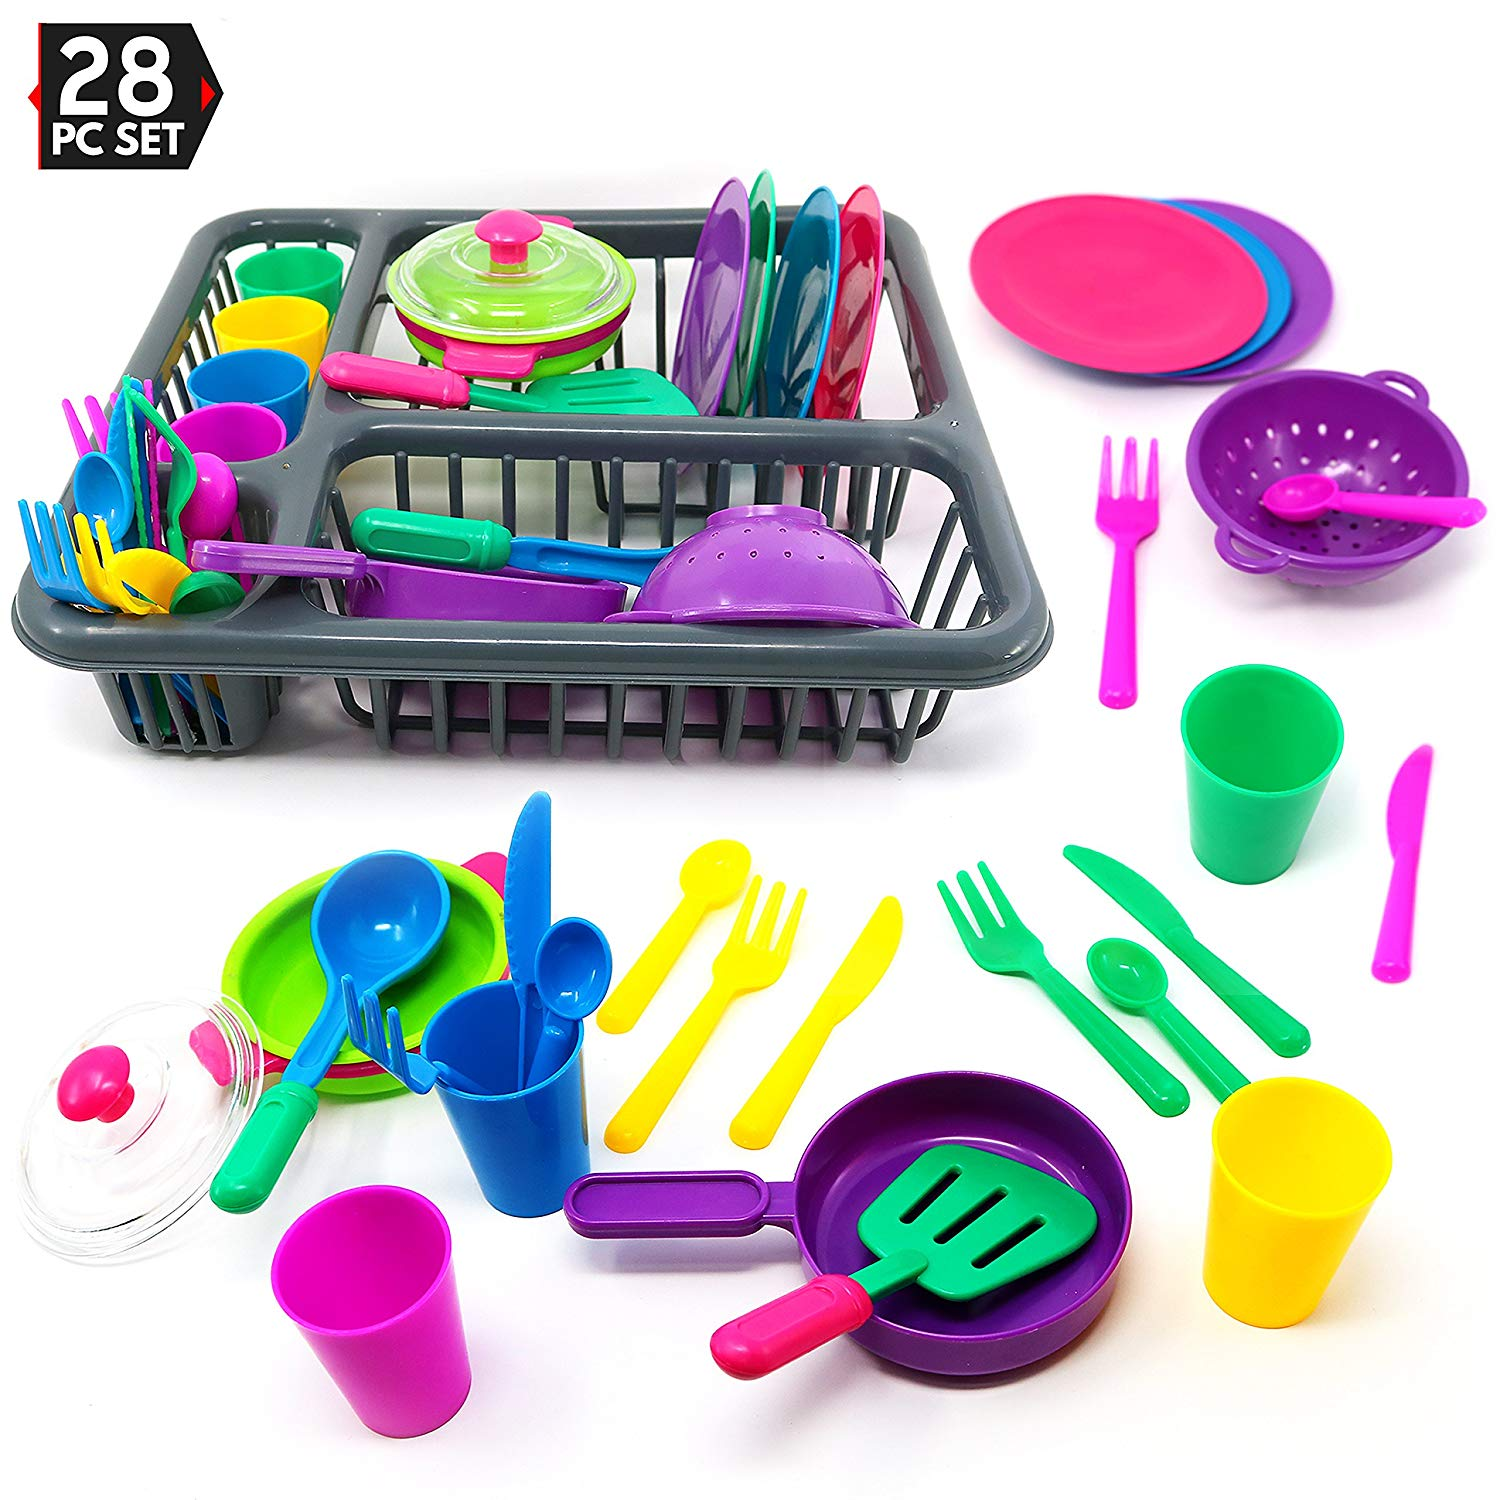 """The best toy for one year kids cutlery set """"width ="""" 400 """"height ="""" 400 """"srcset ="""" https: // www. top5.com/wp-content/uploads/2013/06/best-toys-for-a-one-year-old- Cutlery-Set.jpg 1500w, https://www.top5.com/wp-content/uploads /2013/06/best-toys-for-aone-year-old-cutlery-set-150x150.jpg 150w, https://www.top5.com/wp-content/uploads/2013/06/best-toys- for-a-one-year-old-cutlery-set-300x300.jpg 300w, https: //www.top5.com/com/wp-content/uploads/ 2013/06 / best-toys-for-a-one-year -old-cutlery-set-768x768.jpg 768w, https://www.top5.com/wp-content/ uploads / 2013/06 / best-toys-for-a-one-year-old-cutlery-set- 1024x1024.jpg 1024w, https://www.top5.com/wp-content/uploads/2013/06/best -toys-for-a-one-old-silverware-set-360x360.jpg 360w """"Sizes ="""" ( max width: 400px) 100vw, 400px"""